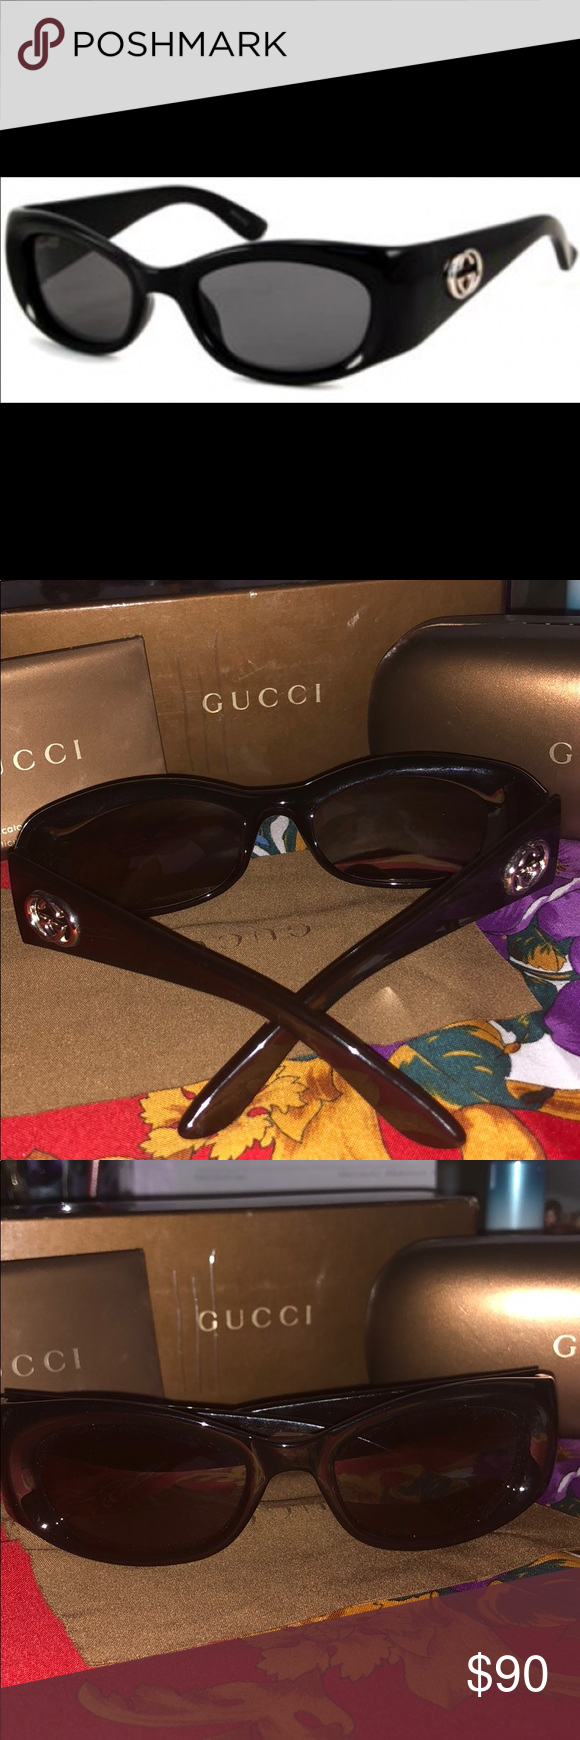 8d01de906a4 Authentic Black Gucci Sunglasses Black Gucci sunglasses with silver GG logo  on sides. Comes with everything in photos. Accessories Sunglasses